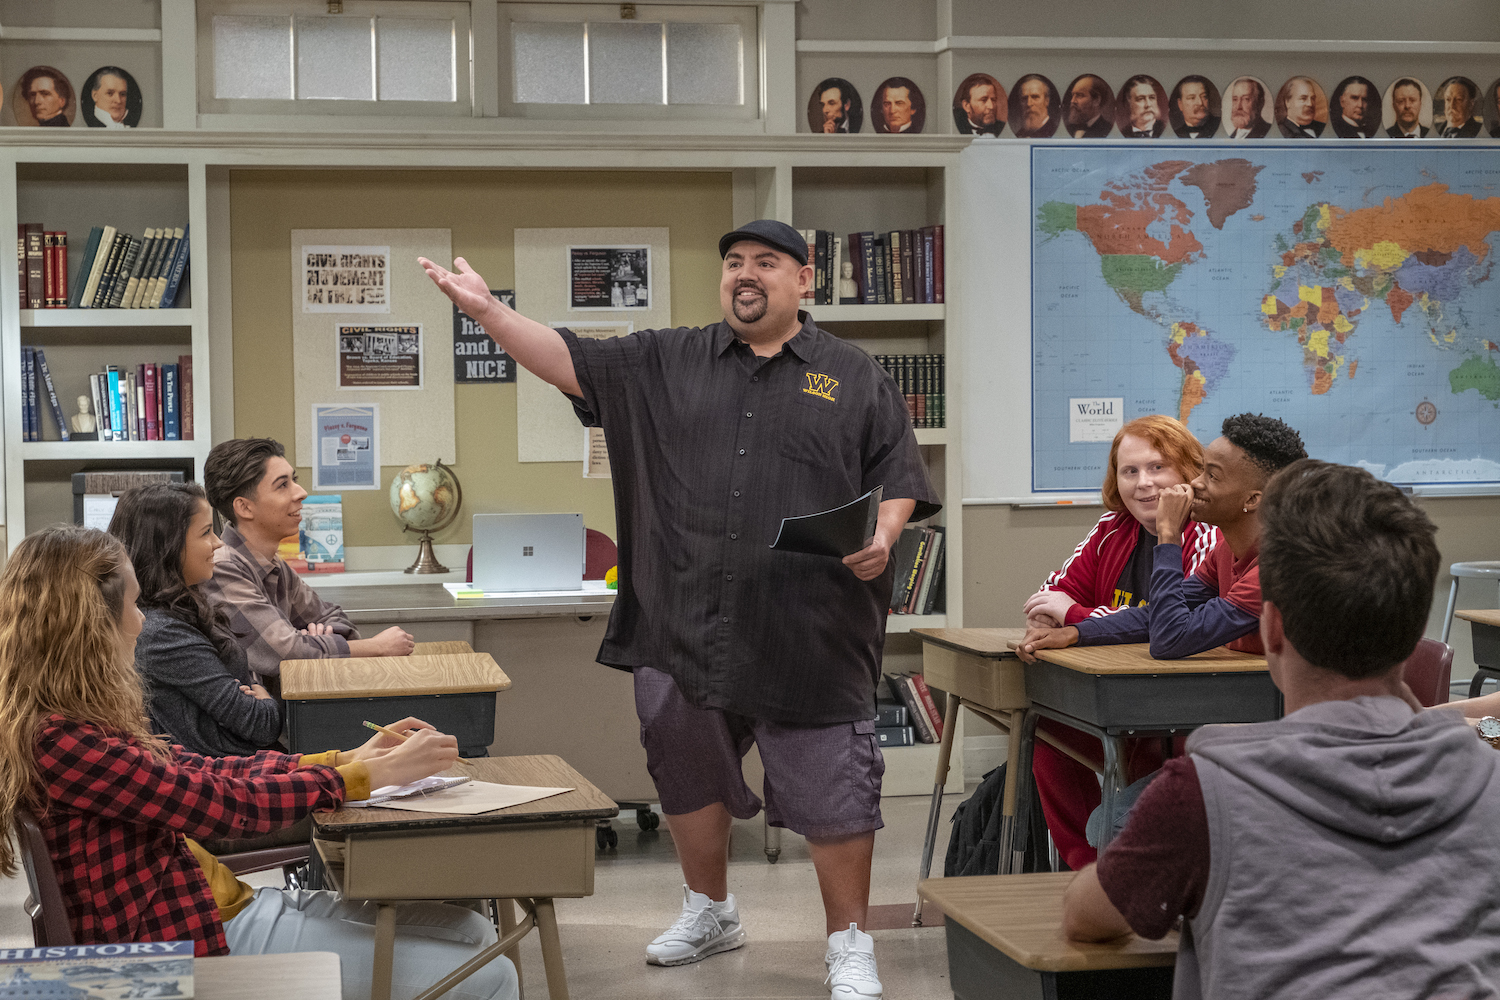 REVIEW: 'Mr. Iglesias' Takes on the Life-Changing Power of Teachers, With a Side of Jokes